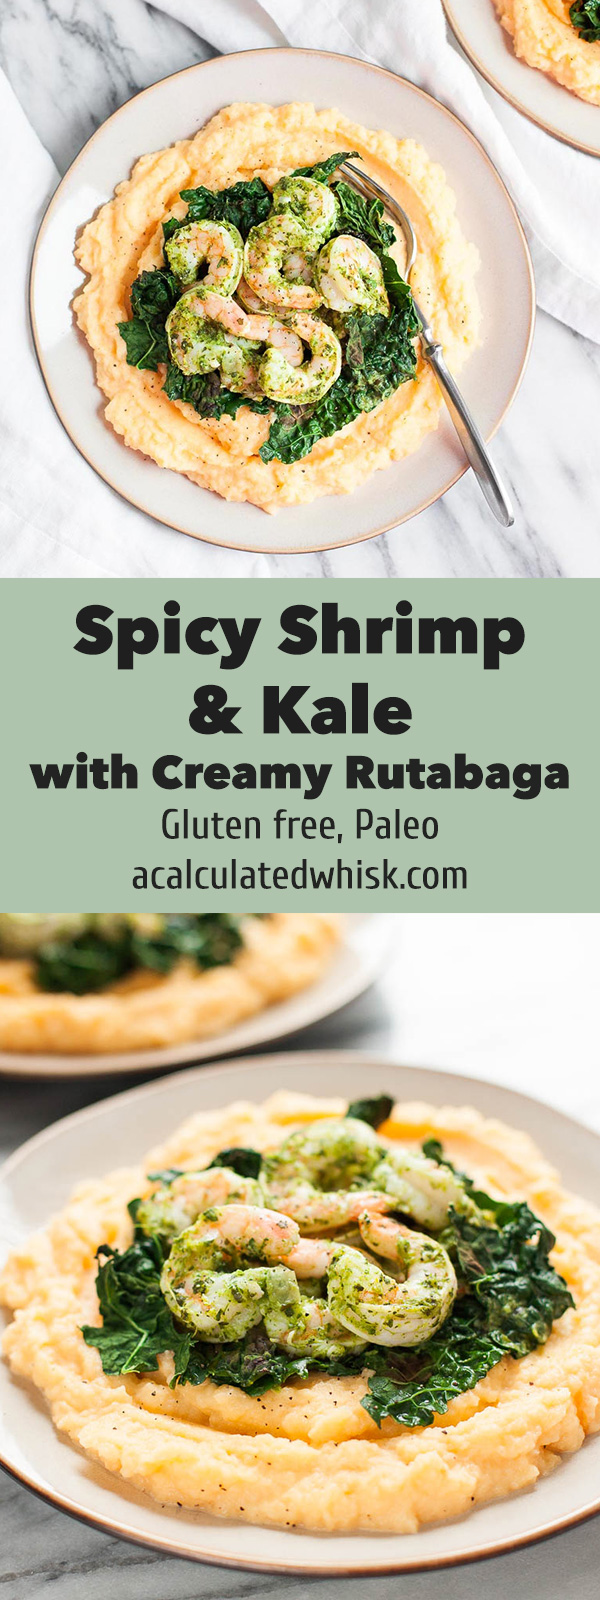 Spicy Shrimp and Kale with Creamy Rutabaga | acalculatedwhisk.com